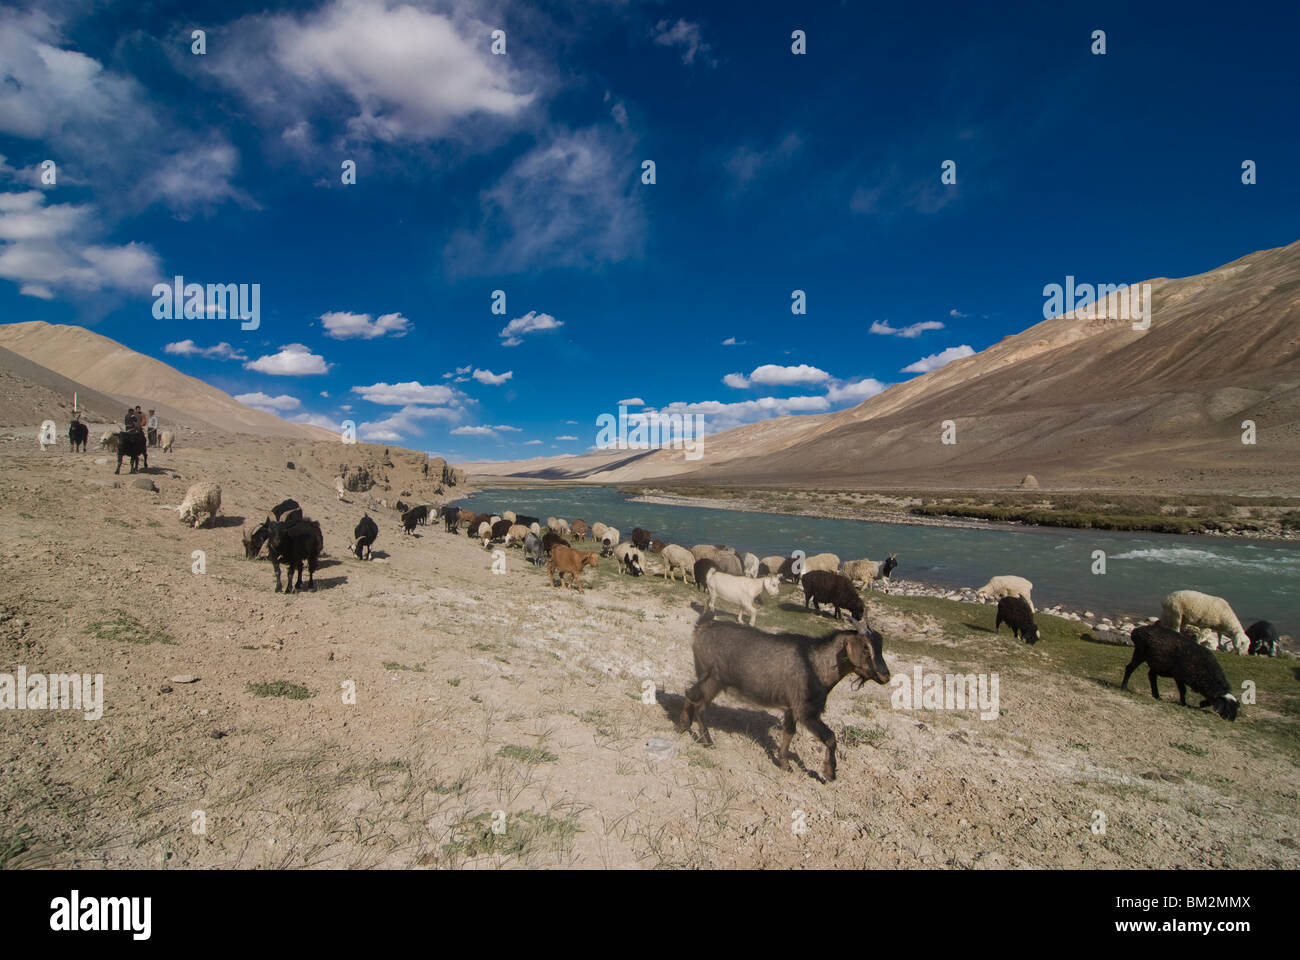 Landscape, river and herd of goats, Wakhan Valley, Tajikistan - Stock Image